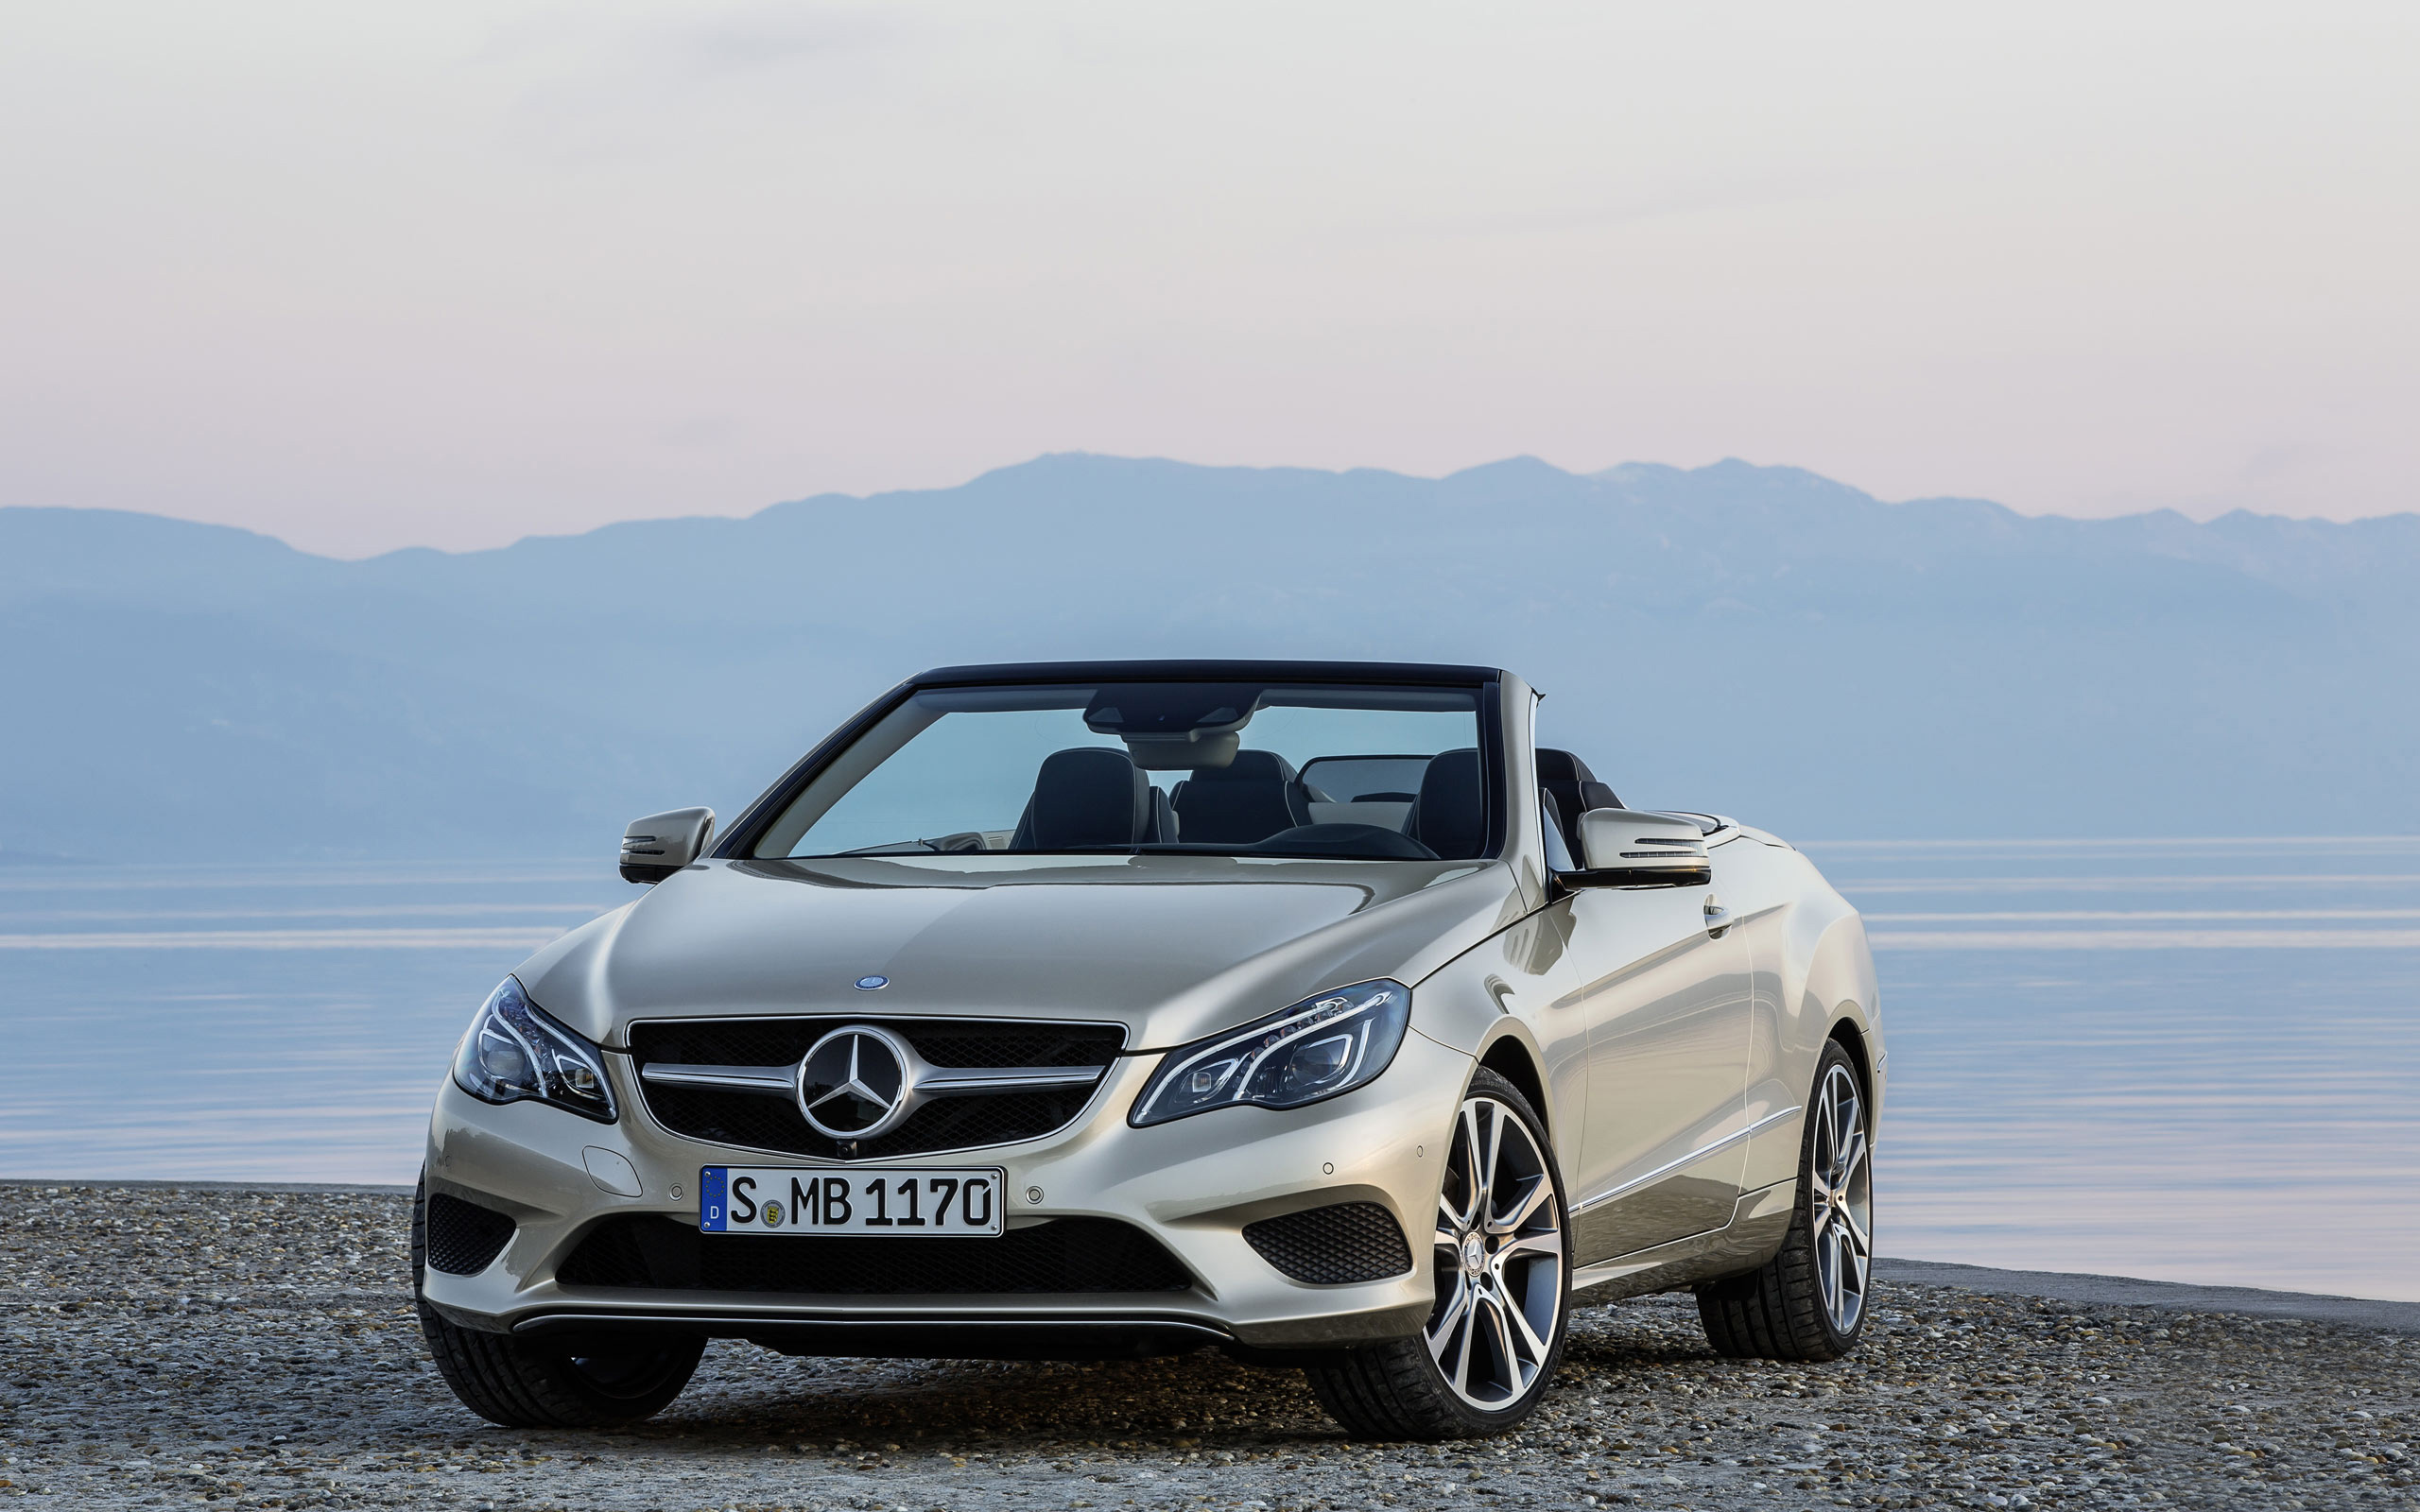 2014 mercedes benz e class cabriolet wallpaper hd car wallpapers. Black Bedroom Furniture Sets. Home Design Ideas